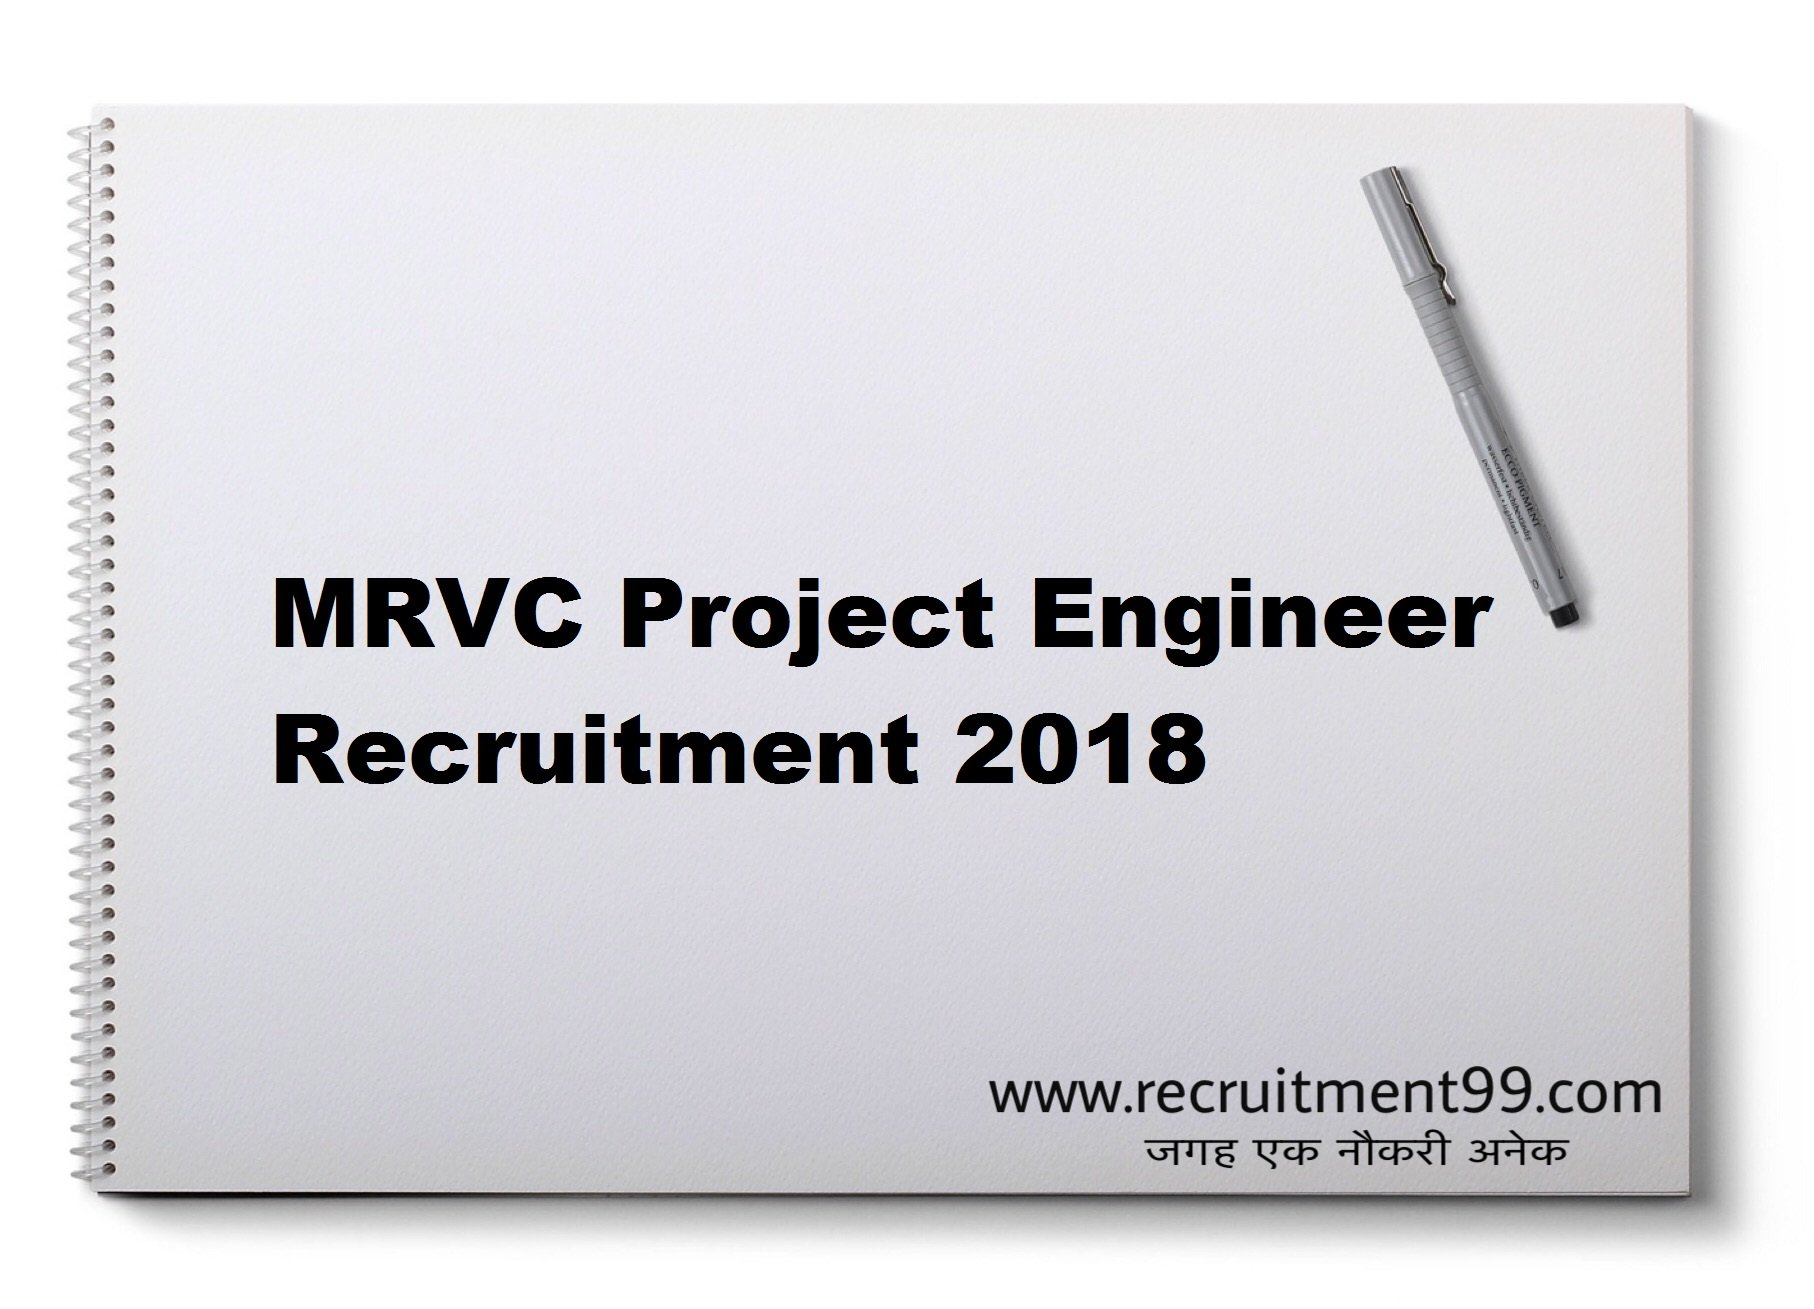 MRVC Project Engineer Recruitment Admit Card Result 2018